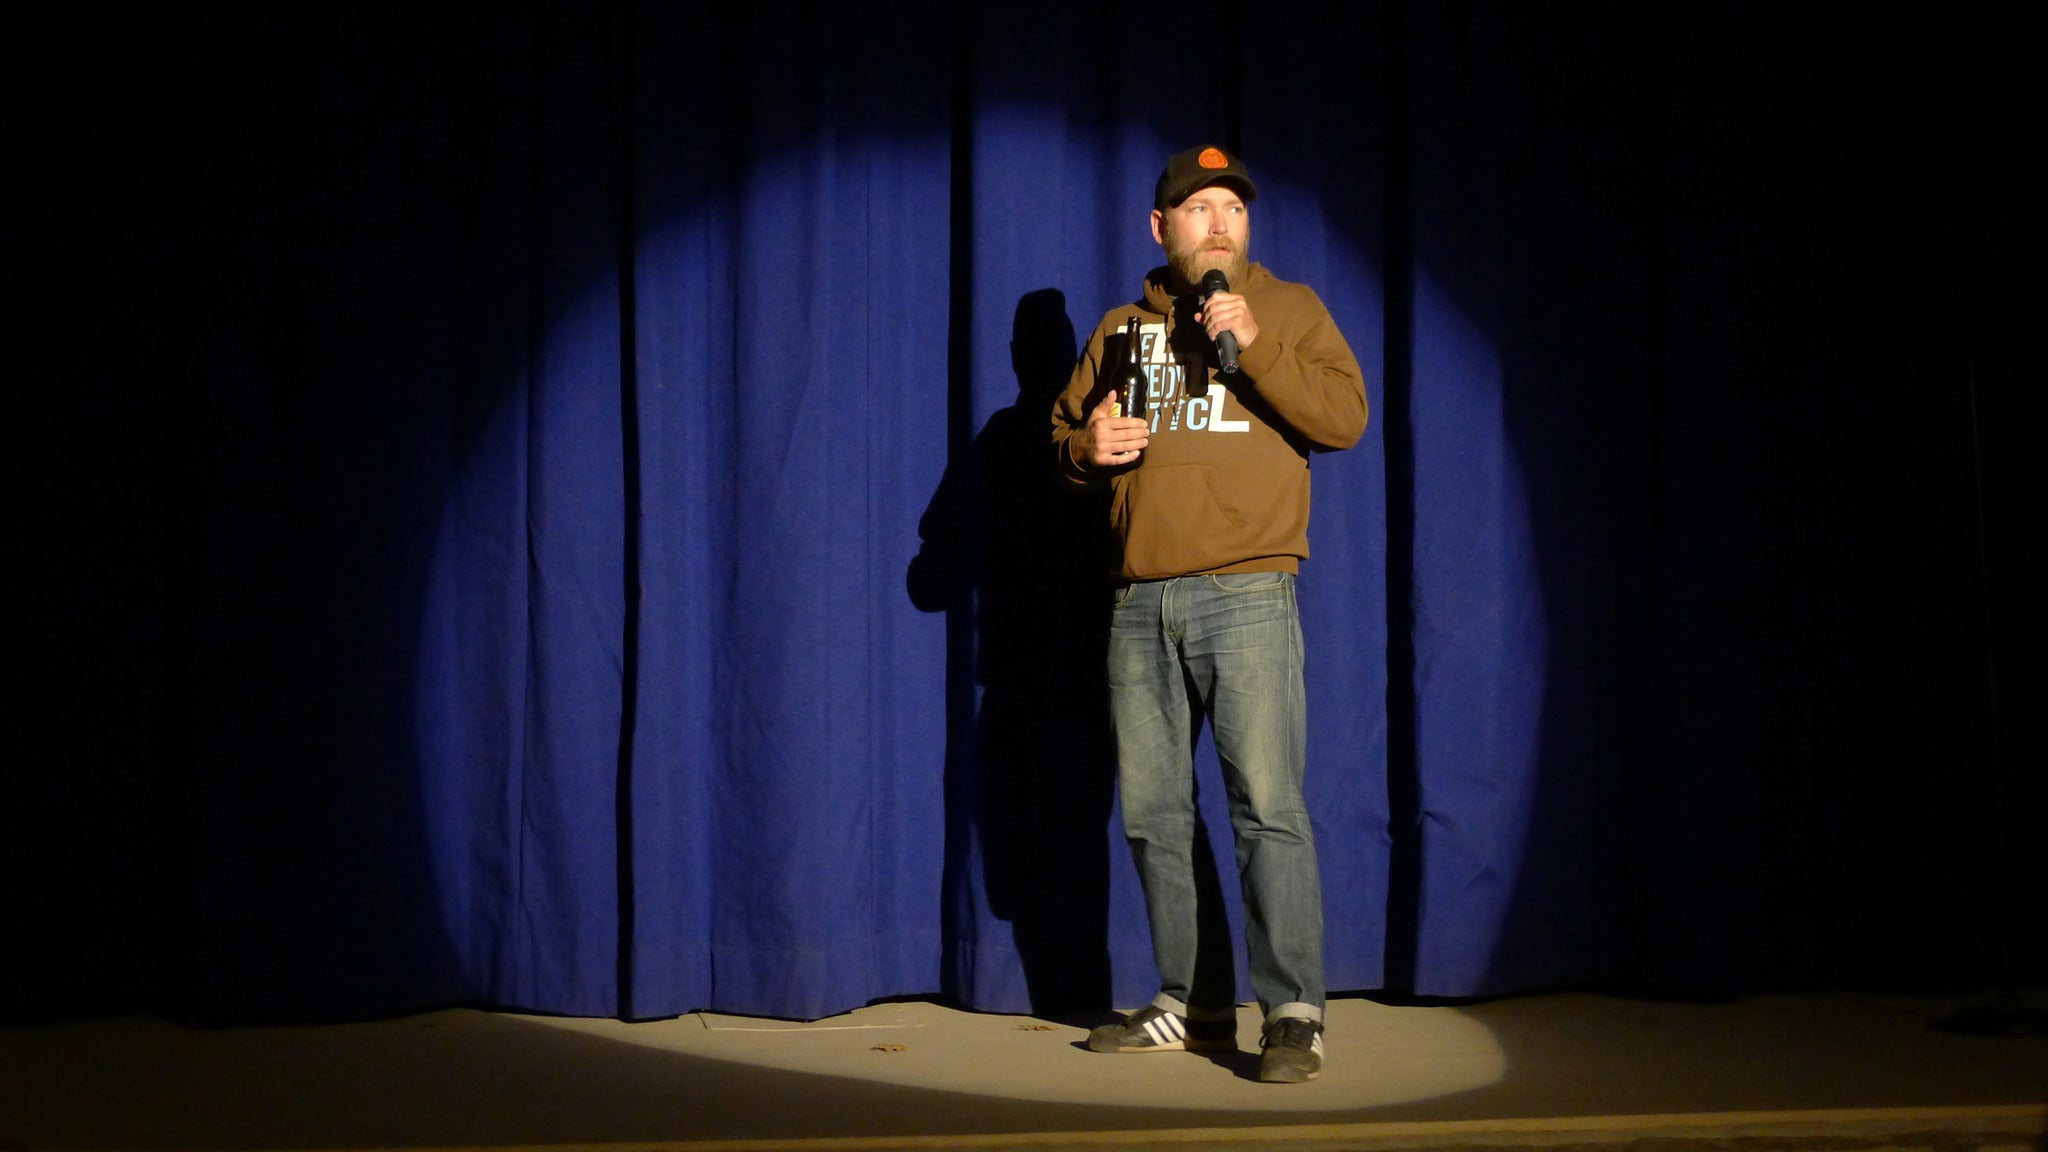 Kyle Kinane at The Crofoot Ballroom